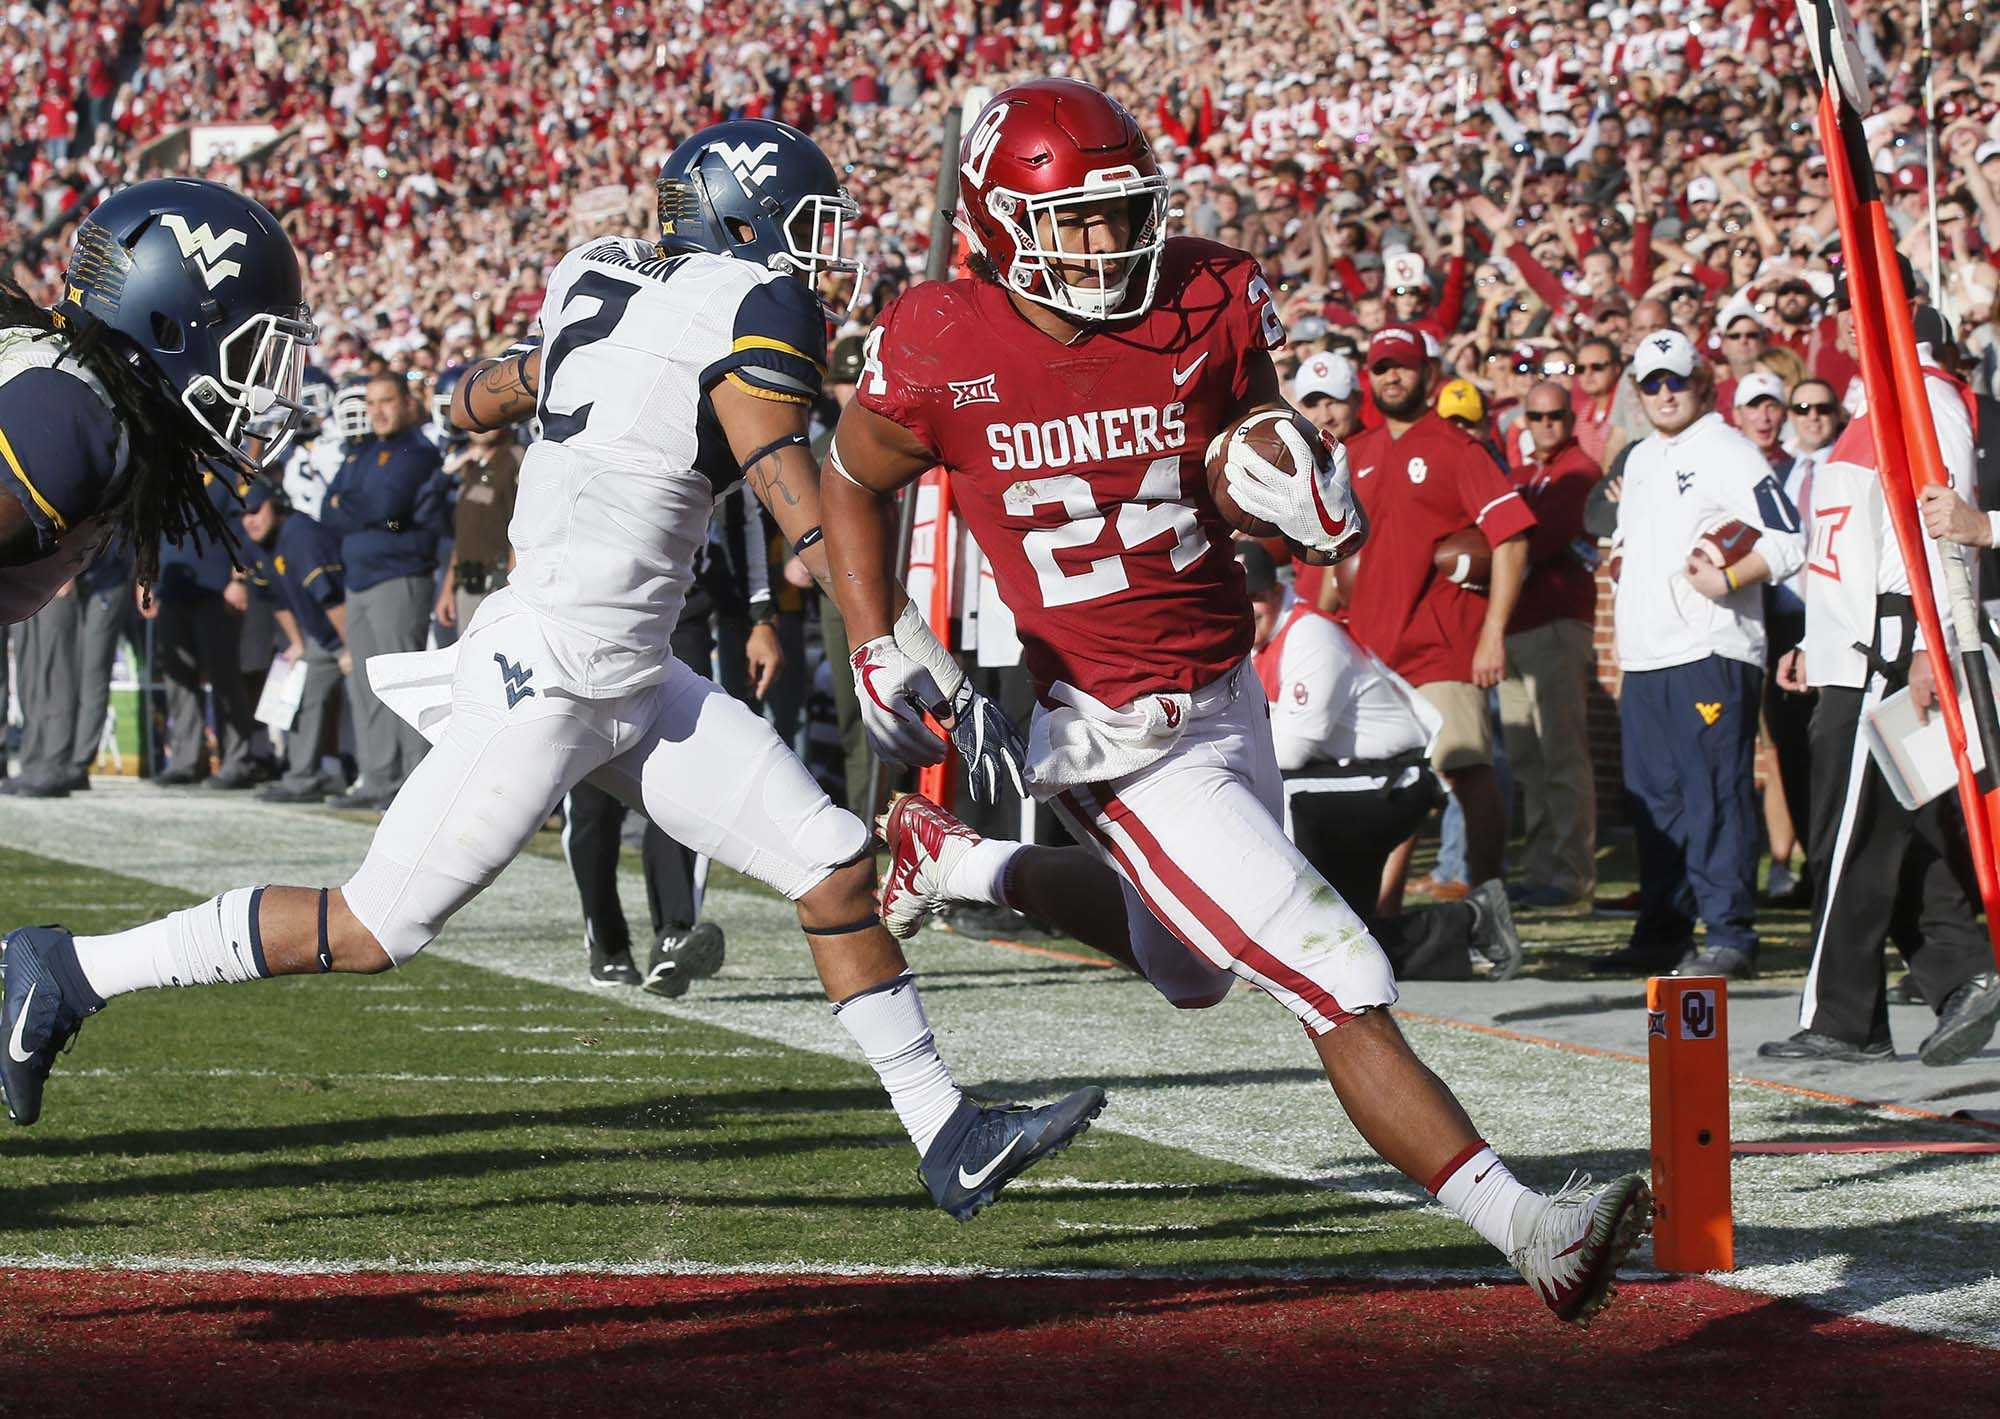 OU running back Rodney Anderson accused of rape